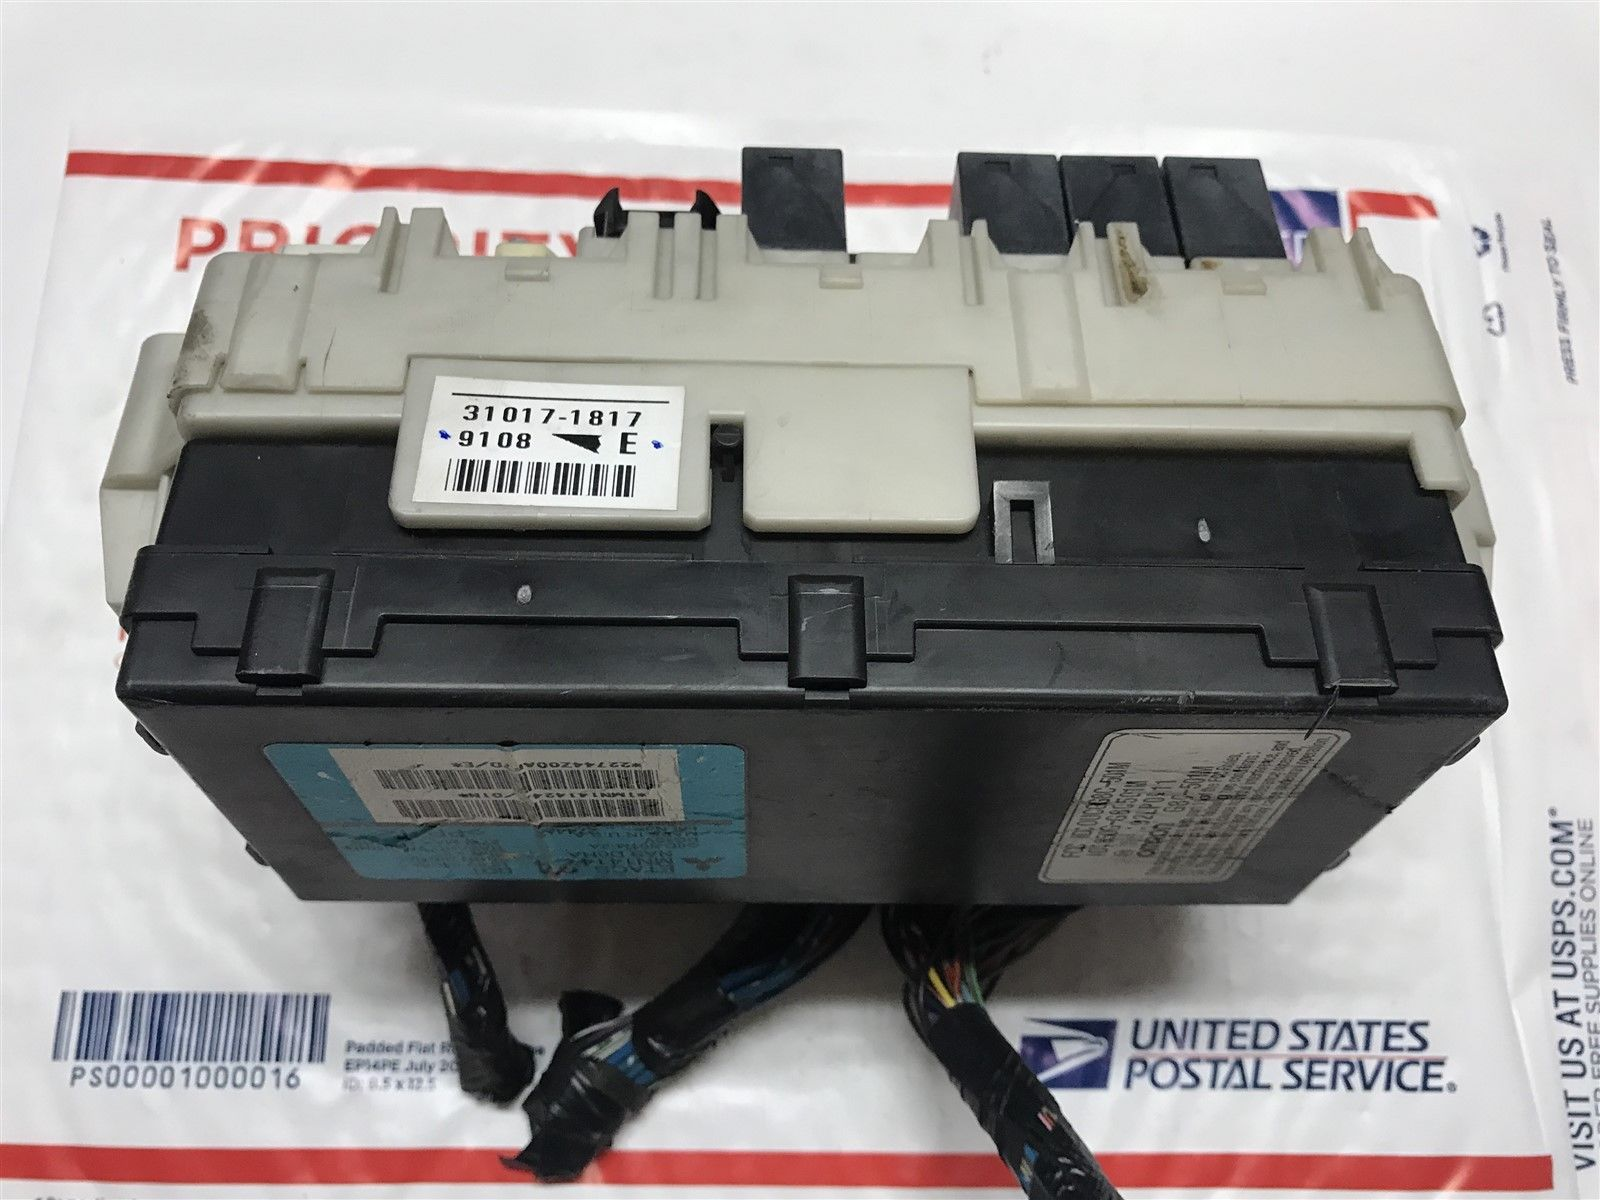 2004 2006 Mitsubishi Endeavor Etacs Body Control Module With Fuse Box Mn141424 Does Not Apply